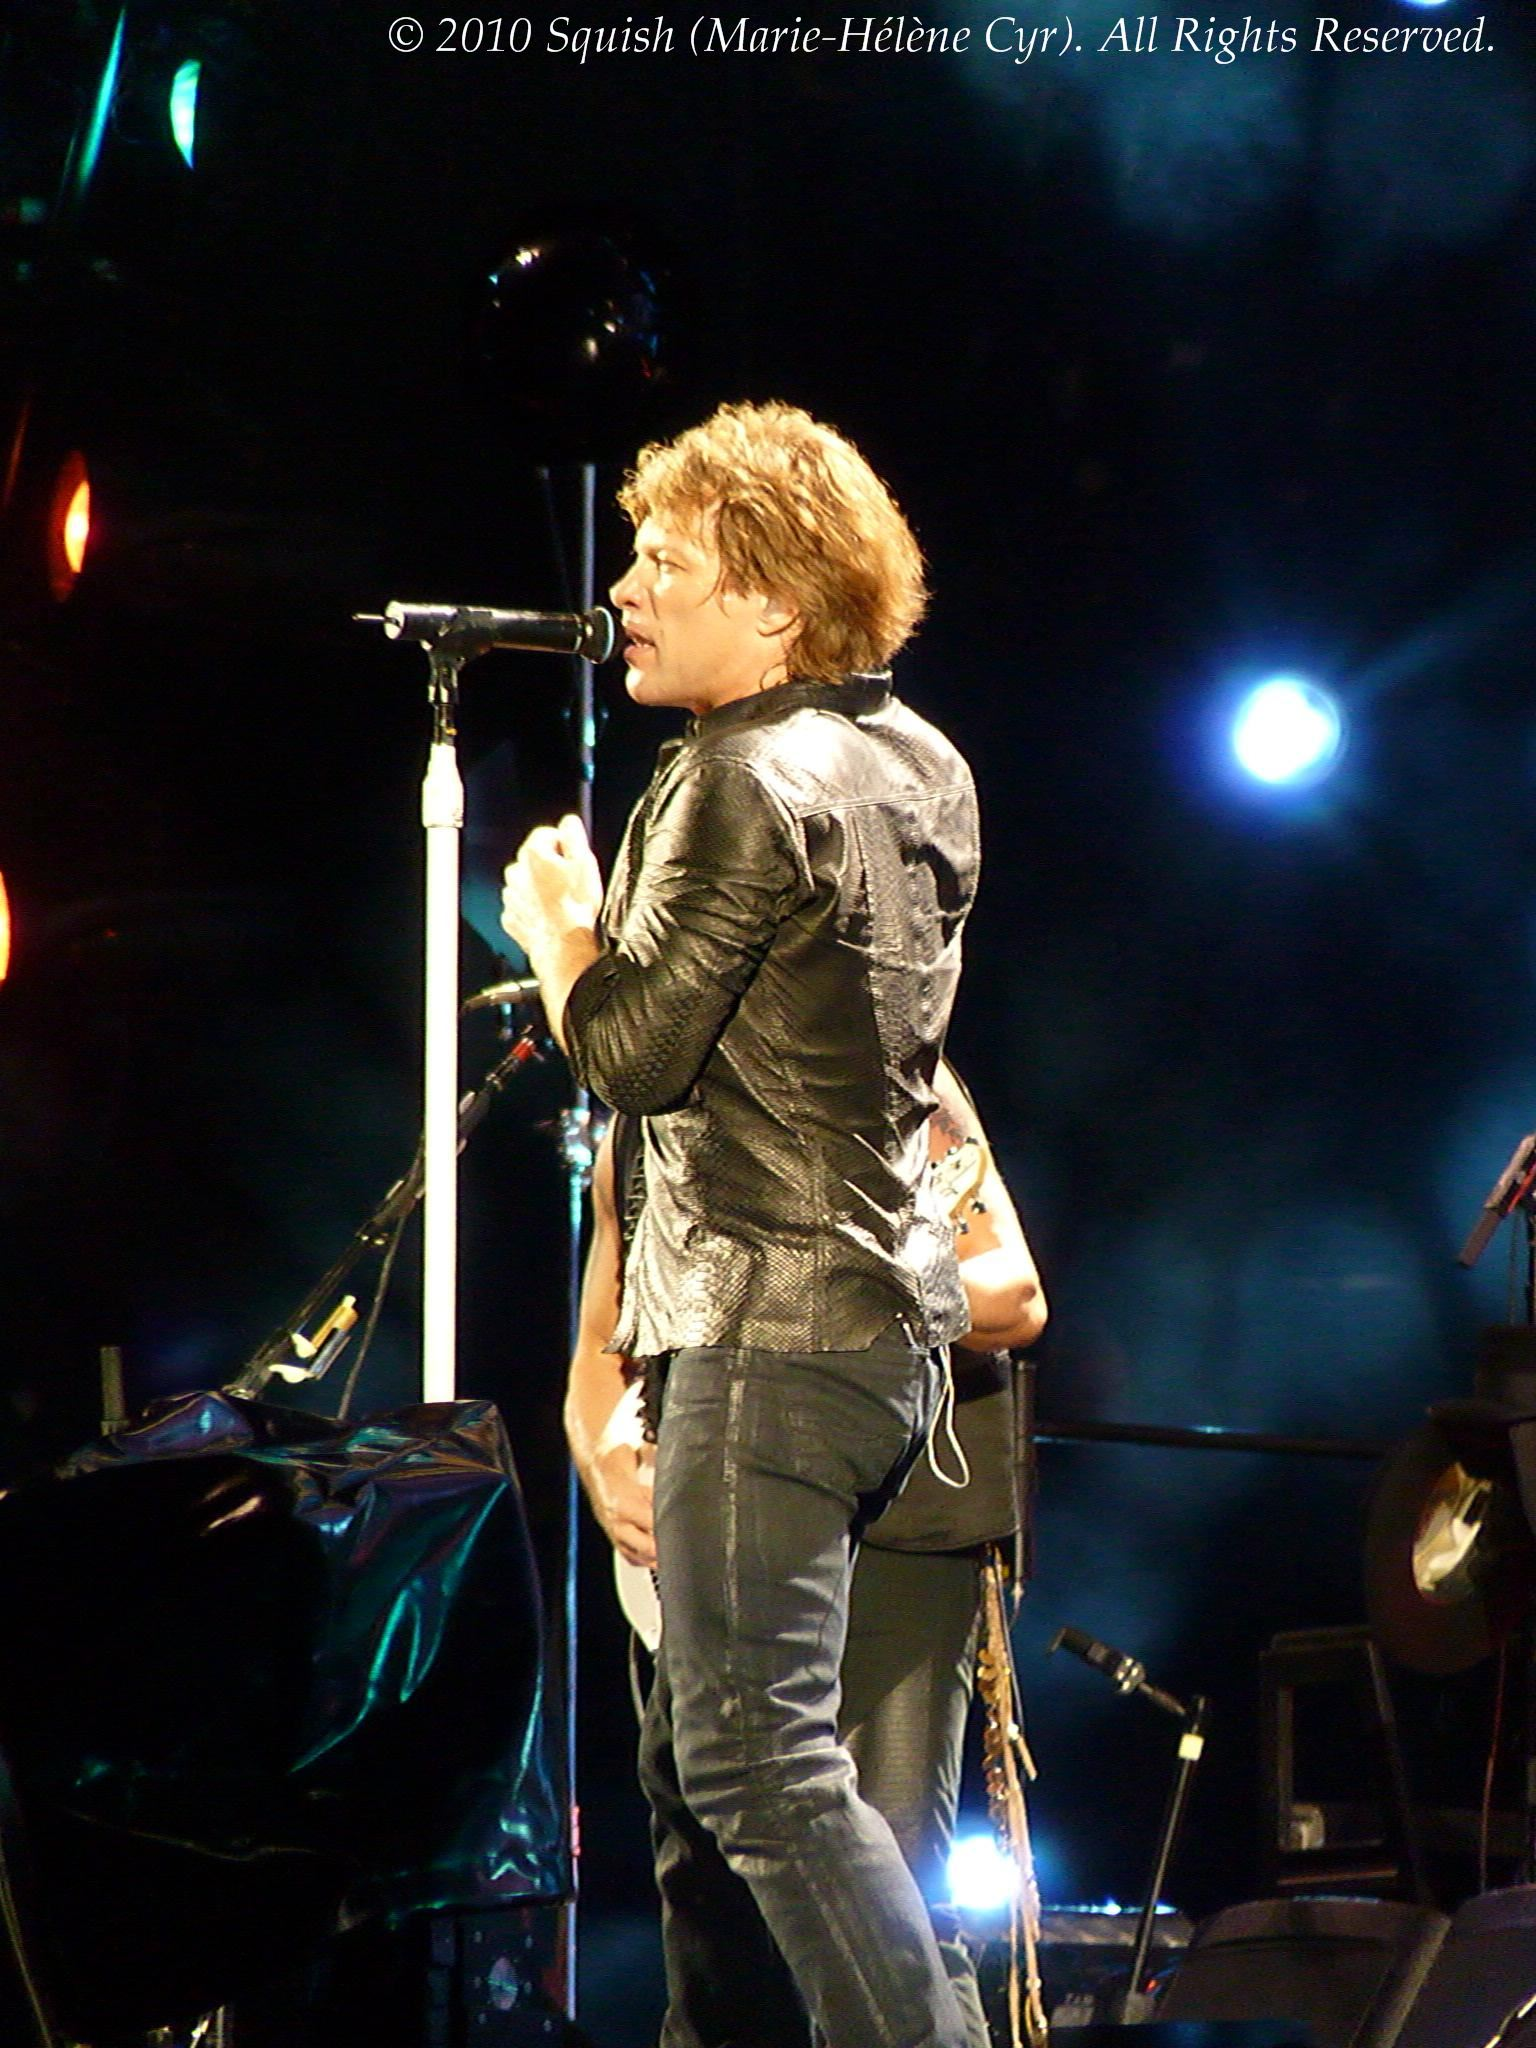 Bon Jovi - Gillette Stadium, MA, USA (July 24, 2010)